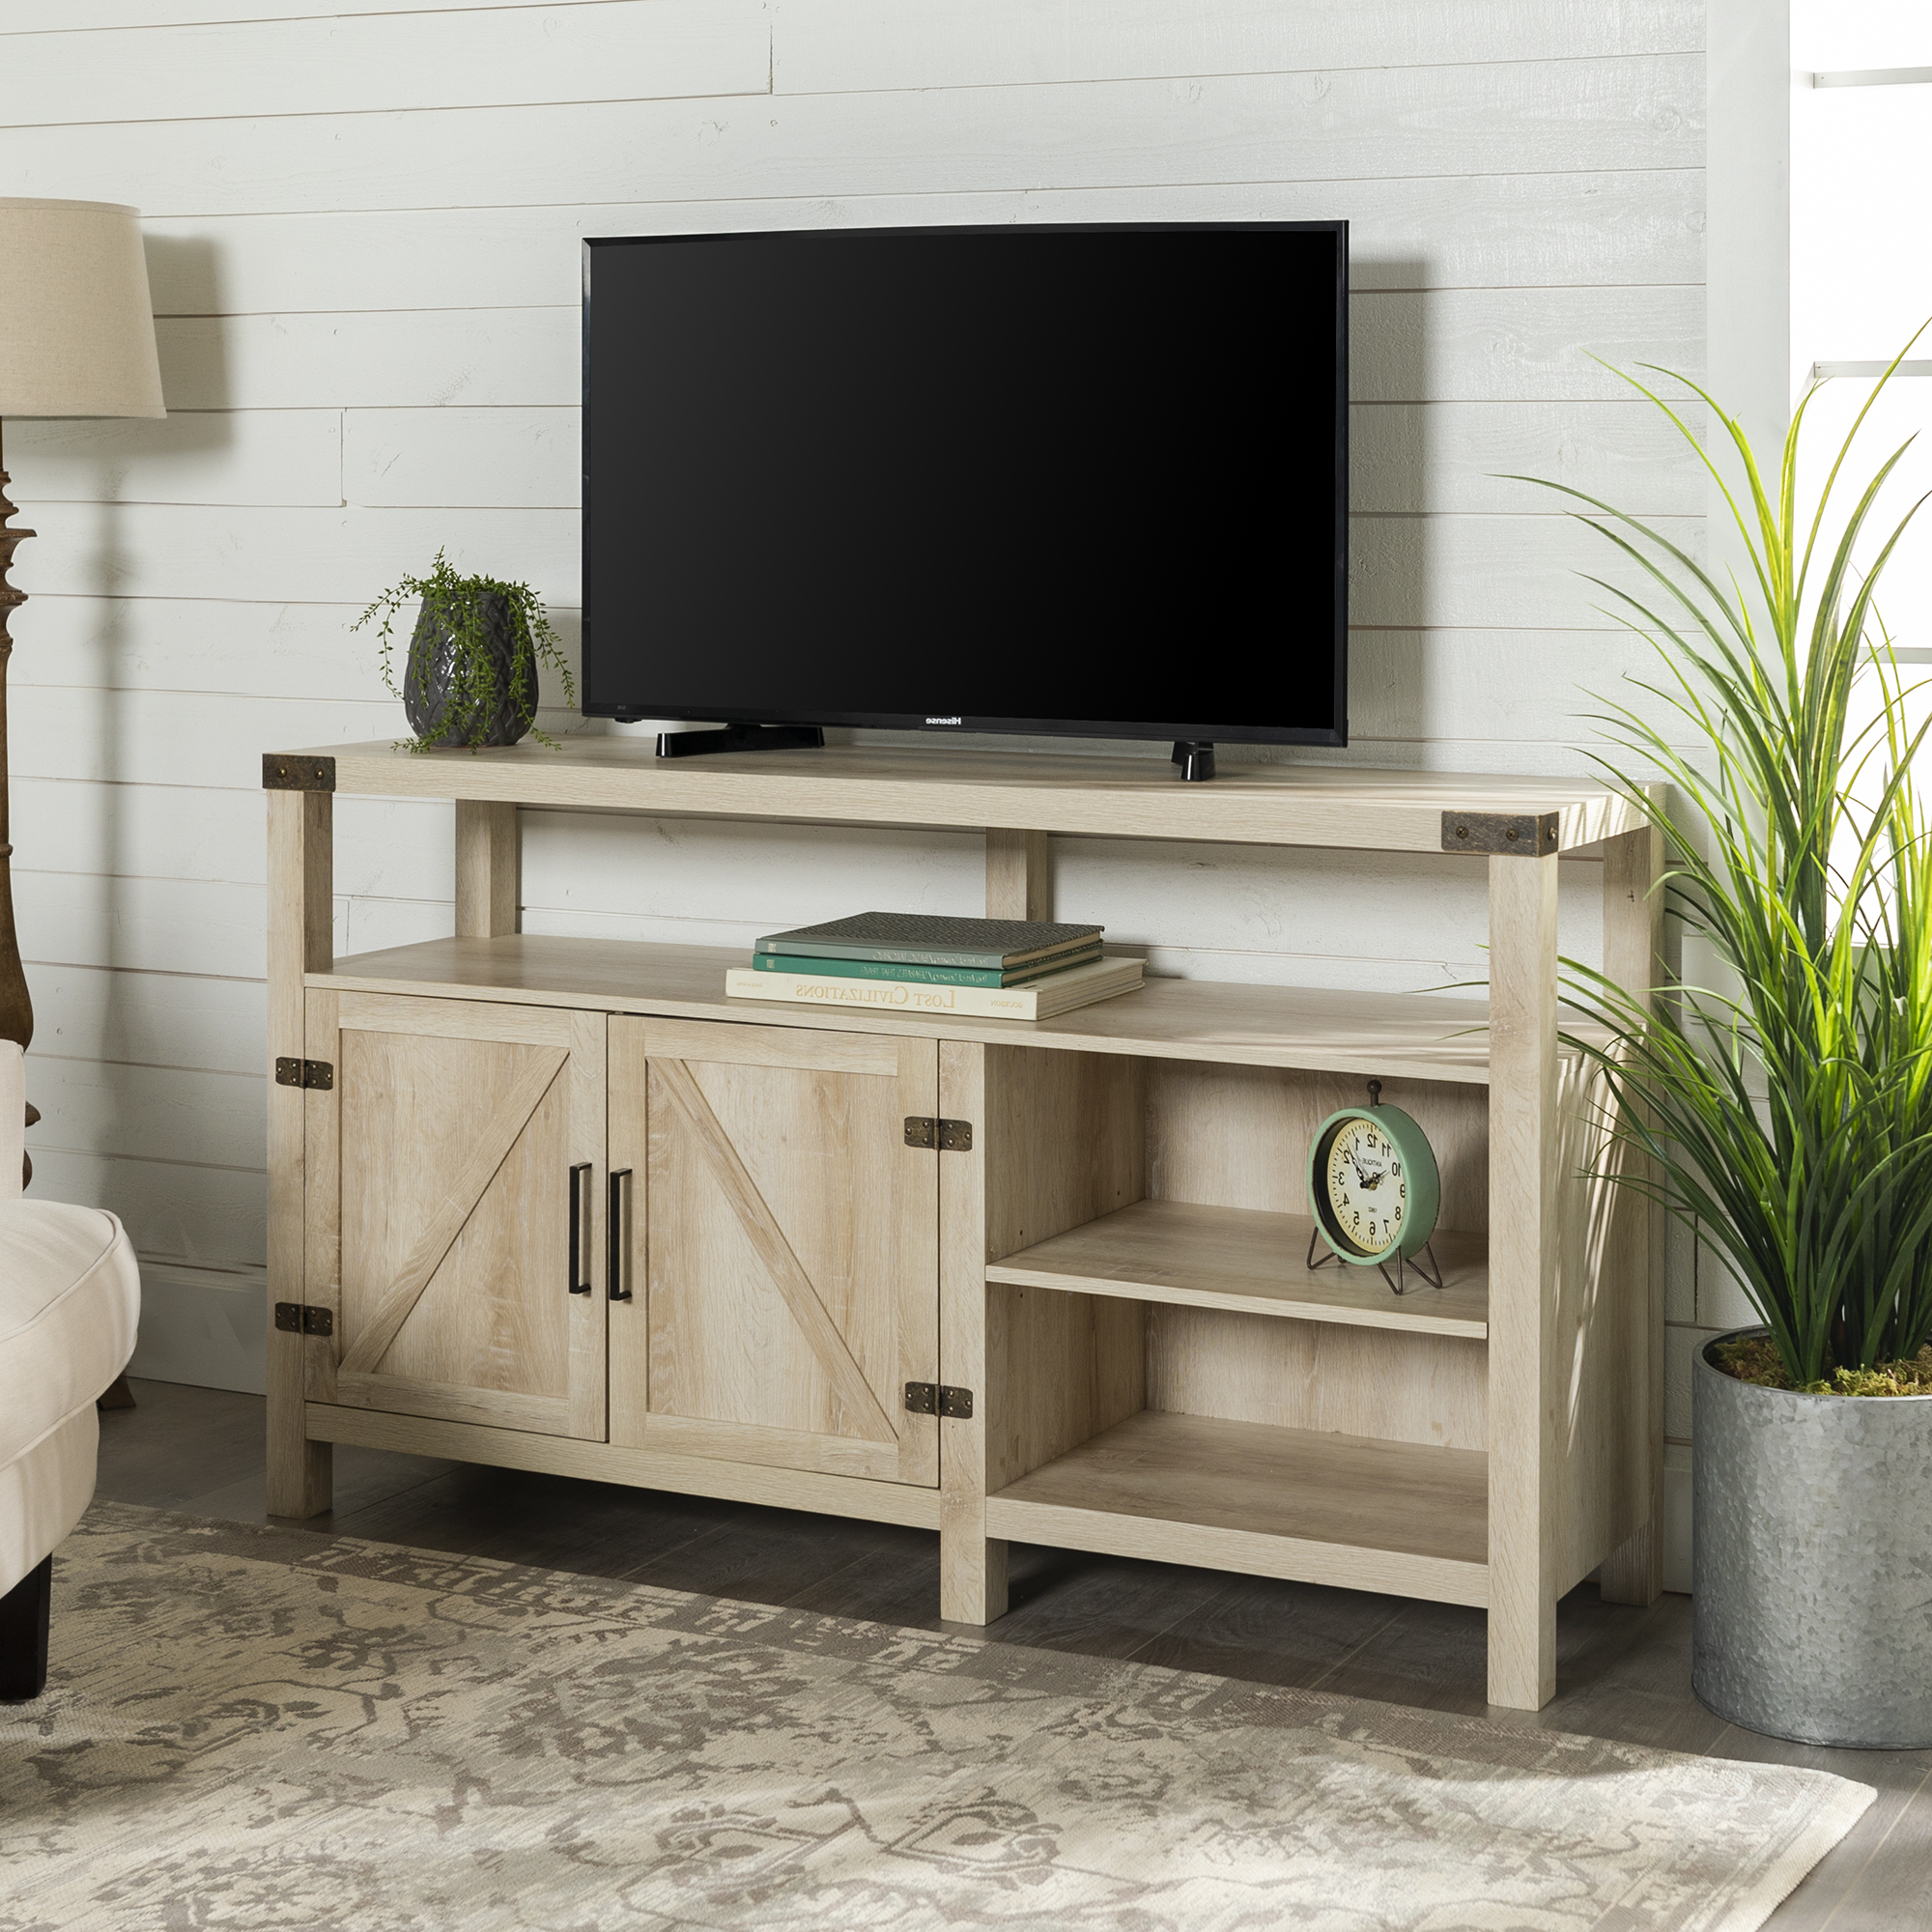 """Woven Paths Modern Farmhouse Oak Tv Stand For Tvs Up To 65 In Totally Tv Stands For Tvs Up To 65"""" (View 3 of 20)"""